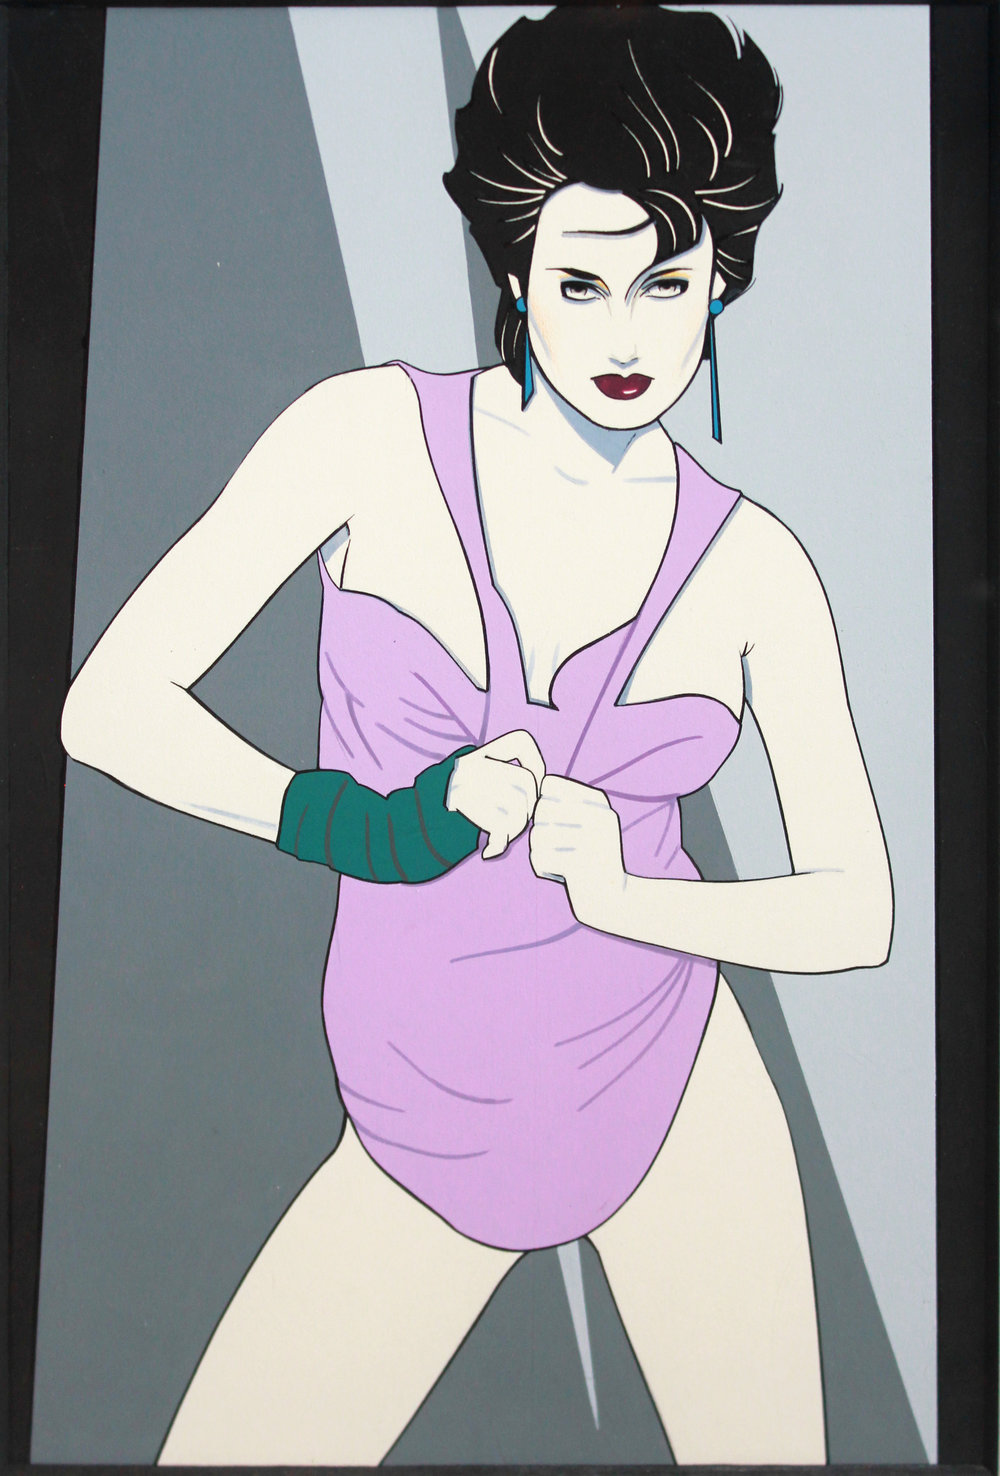 """Patrick Nagel  Untitled, c. 1980's Mixed media on illustration board  Unsigned; Playboy Reproduction stamps on verso """"PLAYBOY'S ARTWORK REPRODUCTION PROHIBITED WITHOUT PLAYBOY'S PERMISSION"""" stamp  Image: 13 x 9 inches; Framed: 22.5 x 17.5 inches  Estimate: $14,000/$18,000"""